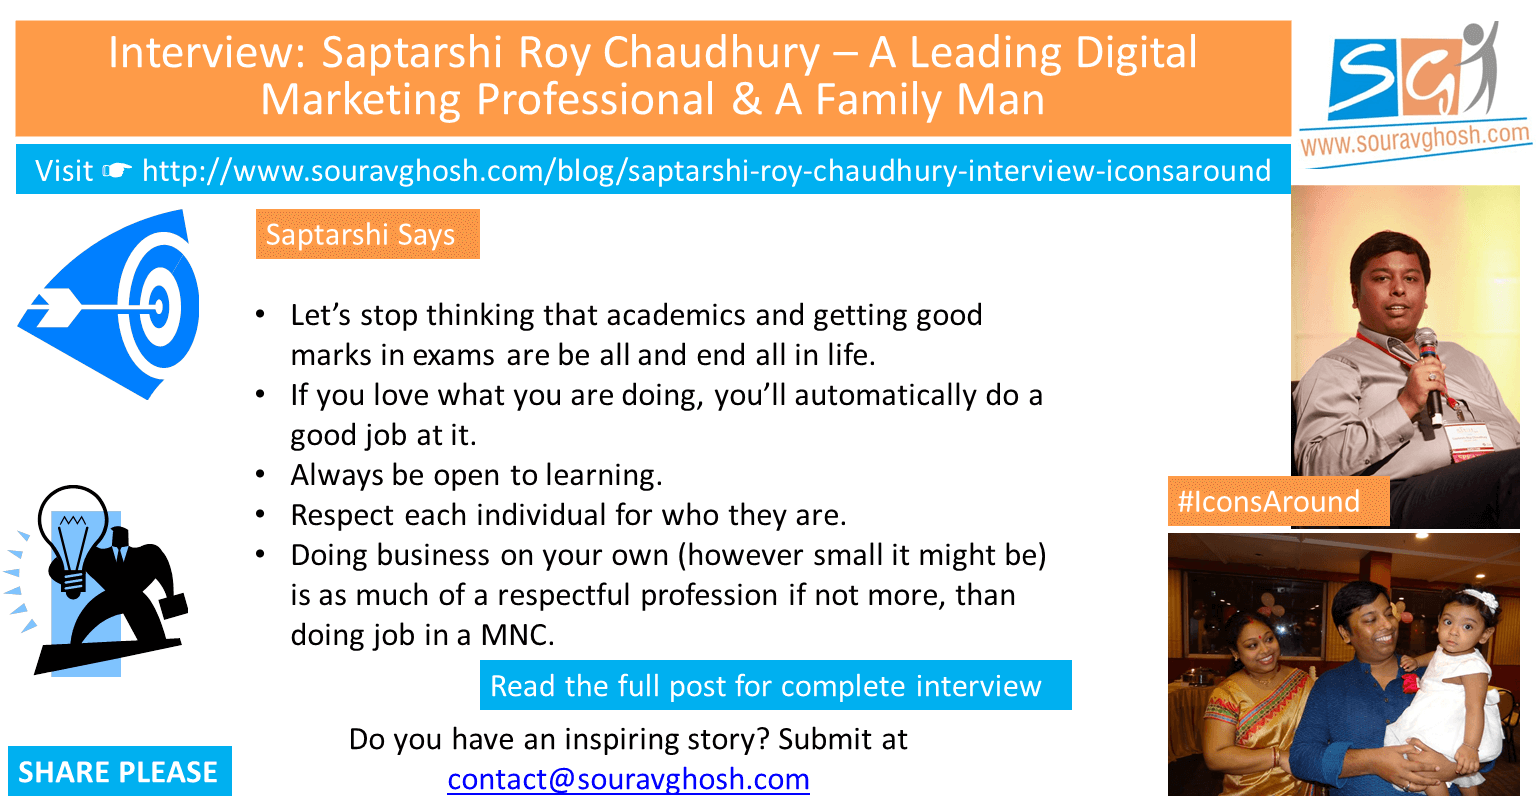 saptarshi-roy-chaudhury-interview-iconsaround